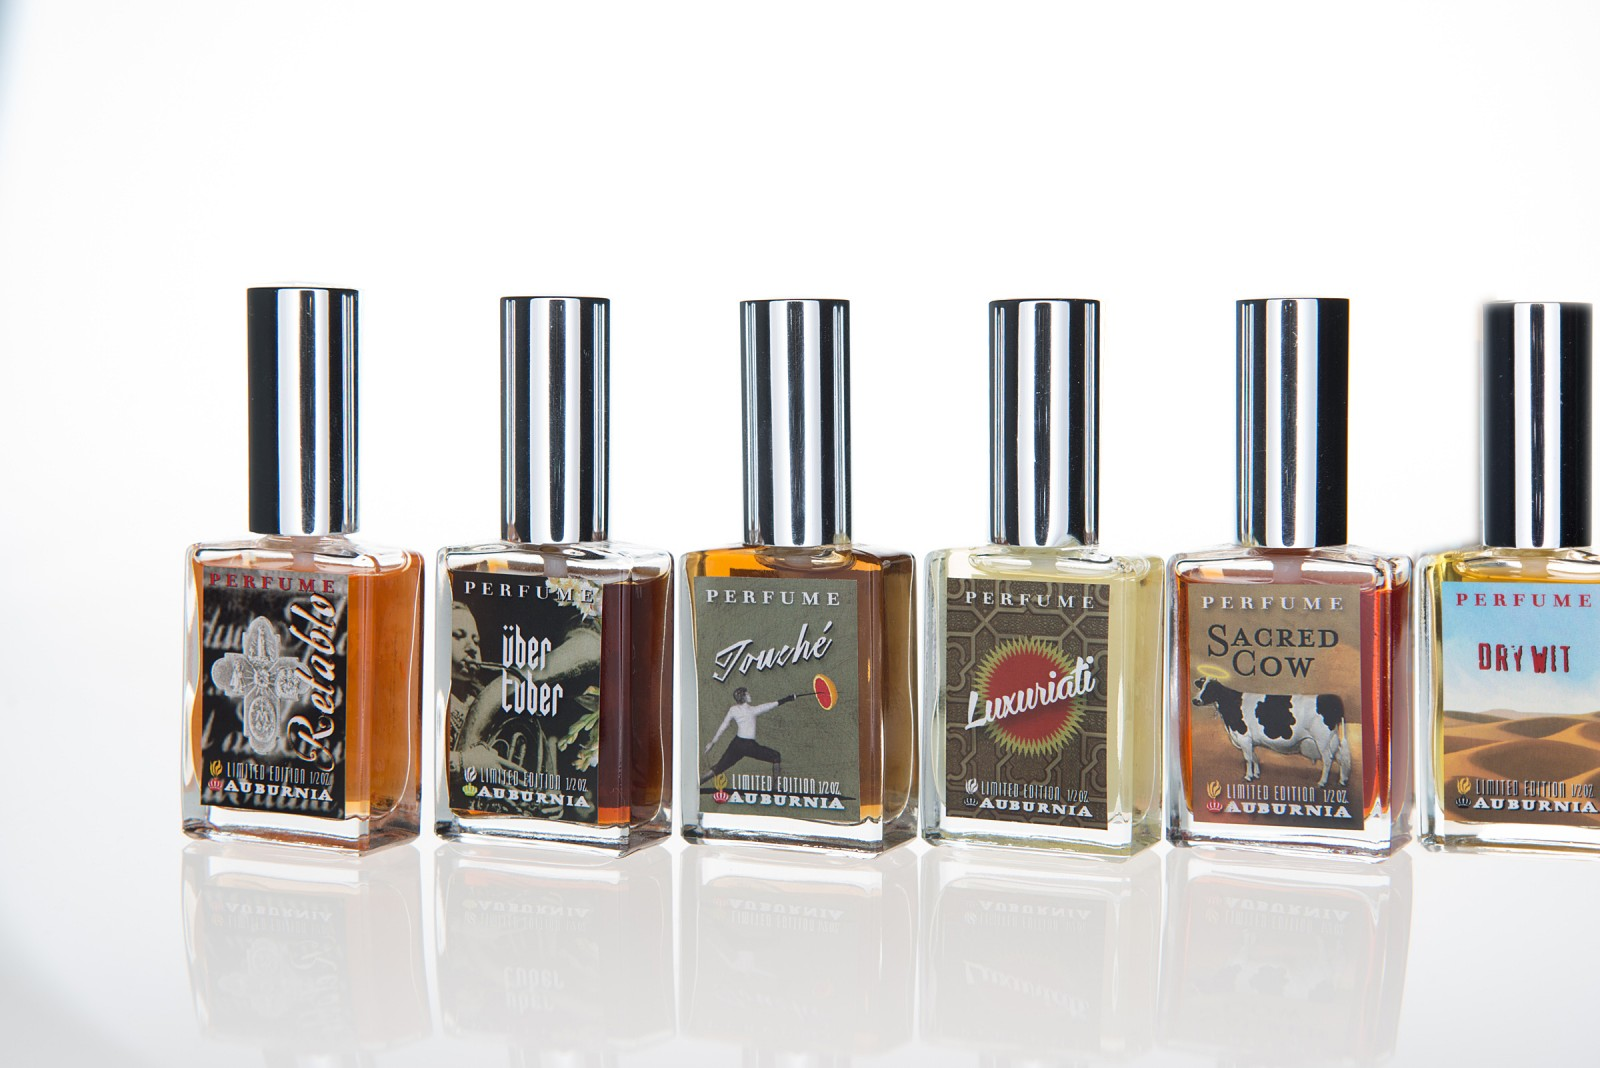 Fragrances created by Michelle Friesenhahn